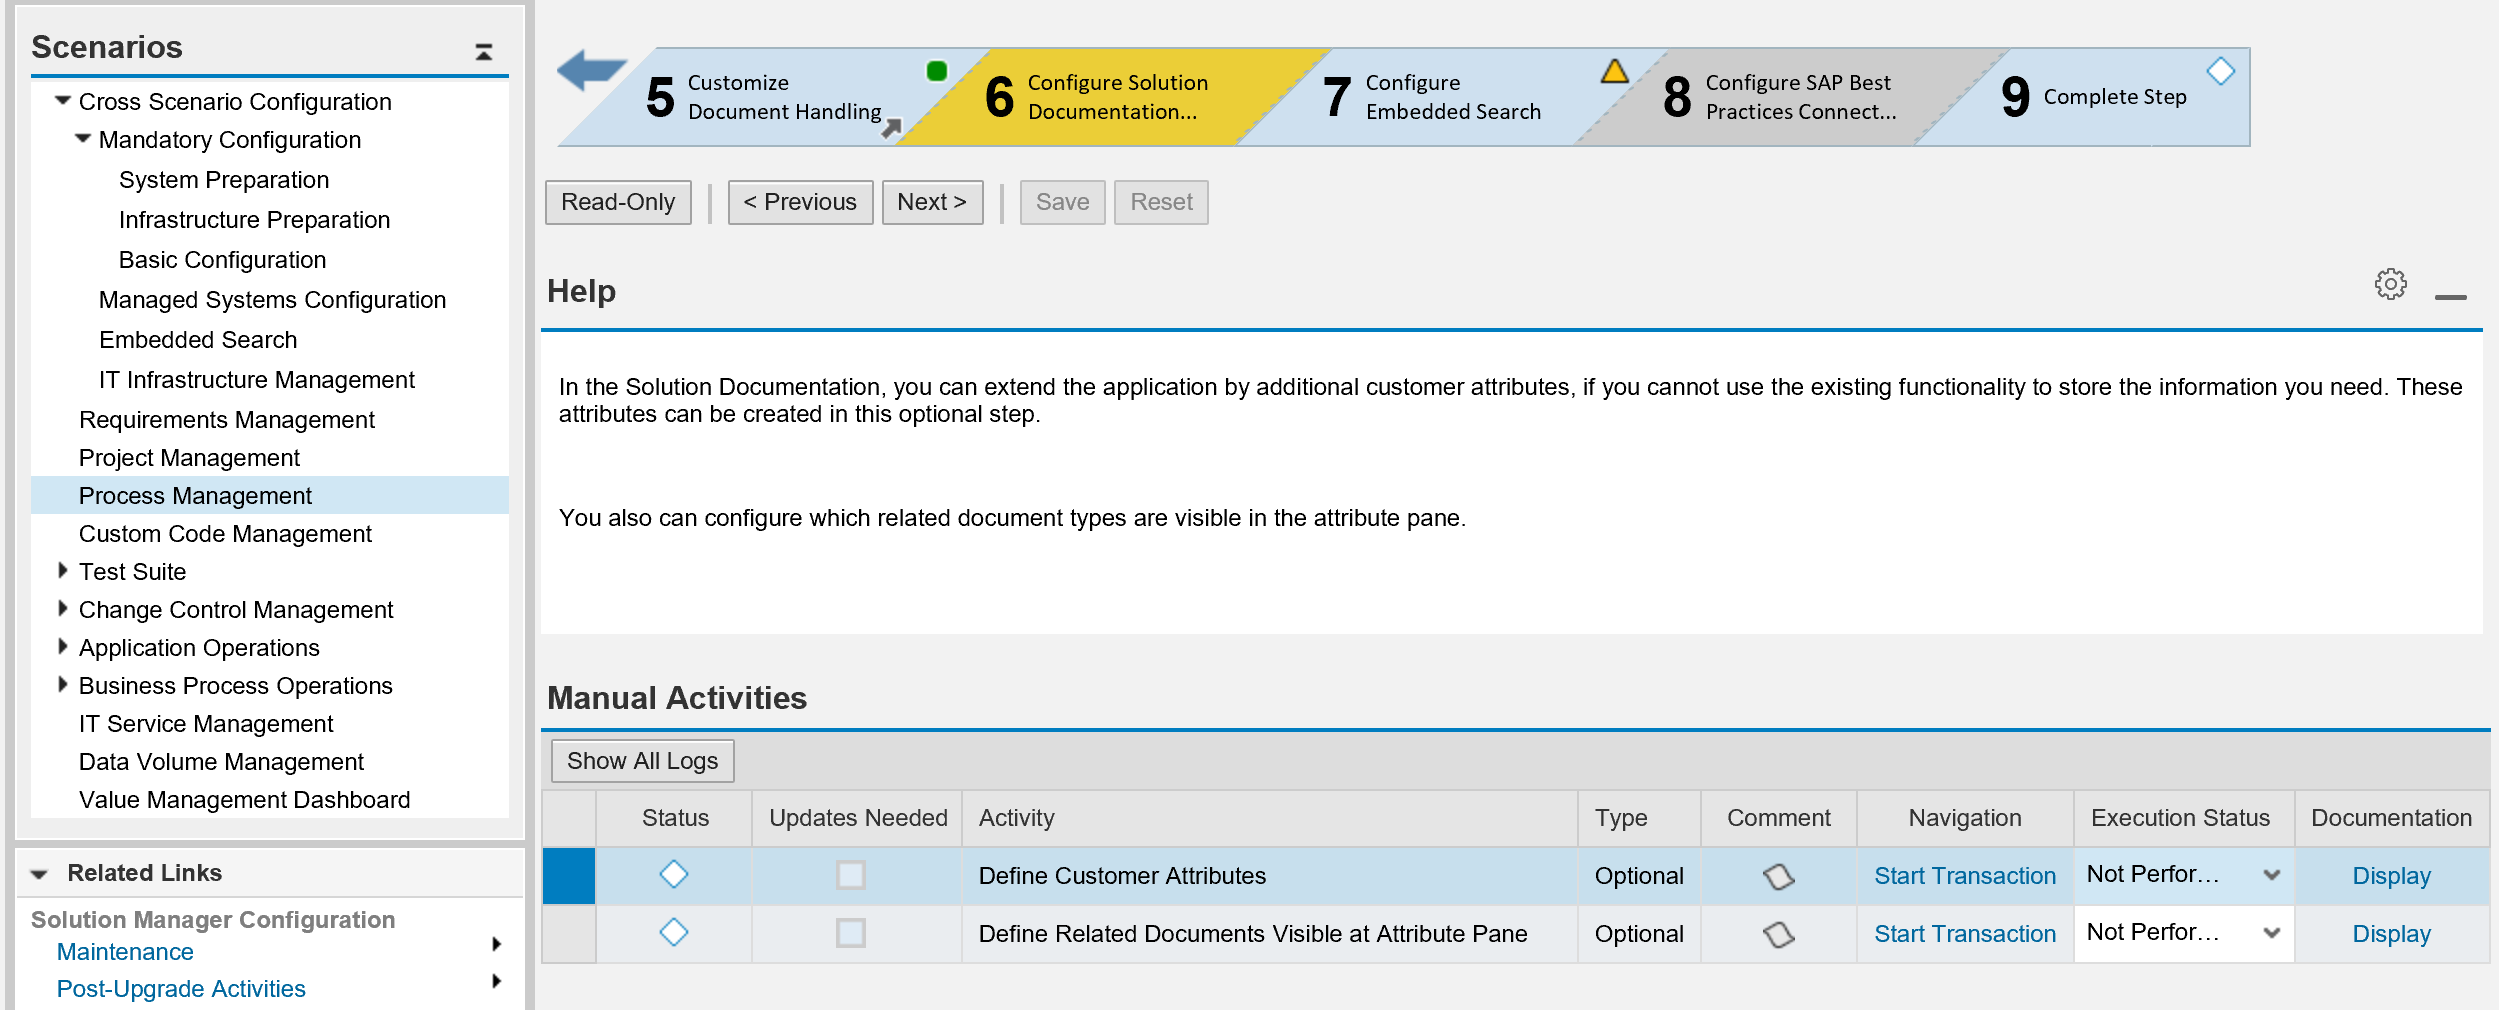 Create Customer Attributes for Elements of the Process Management in